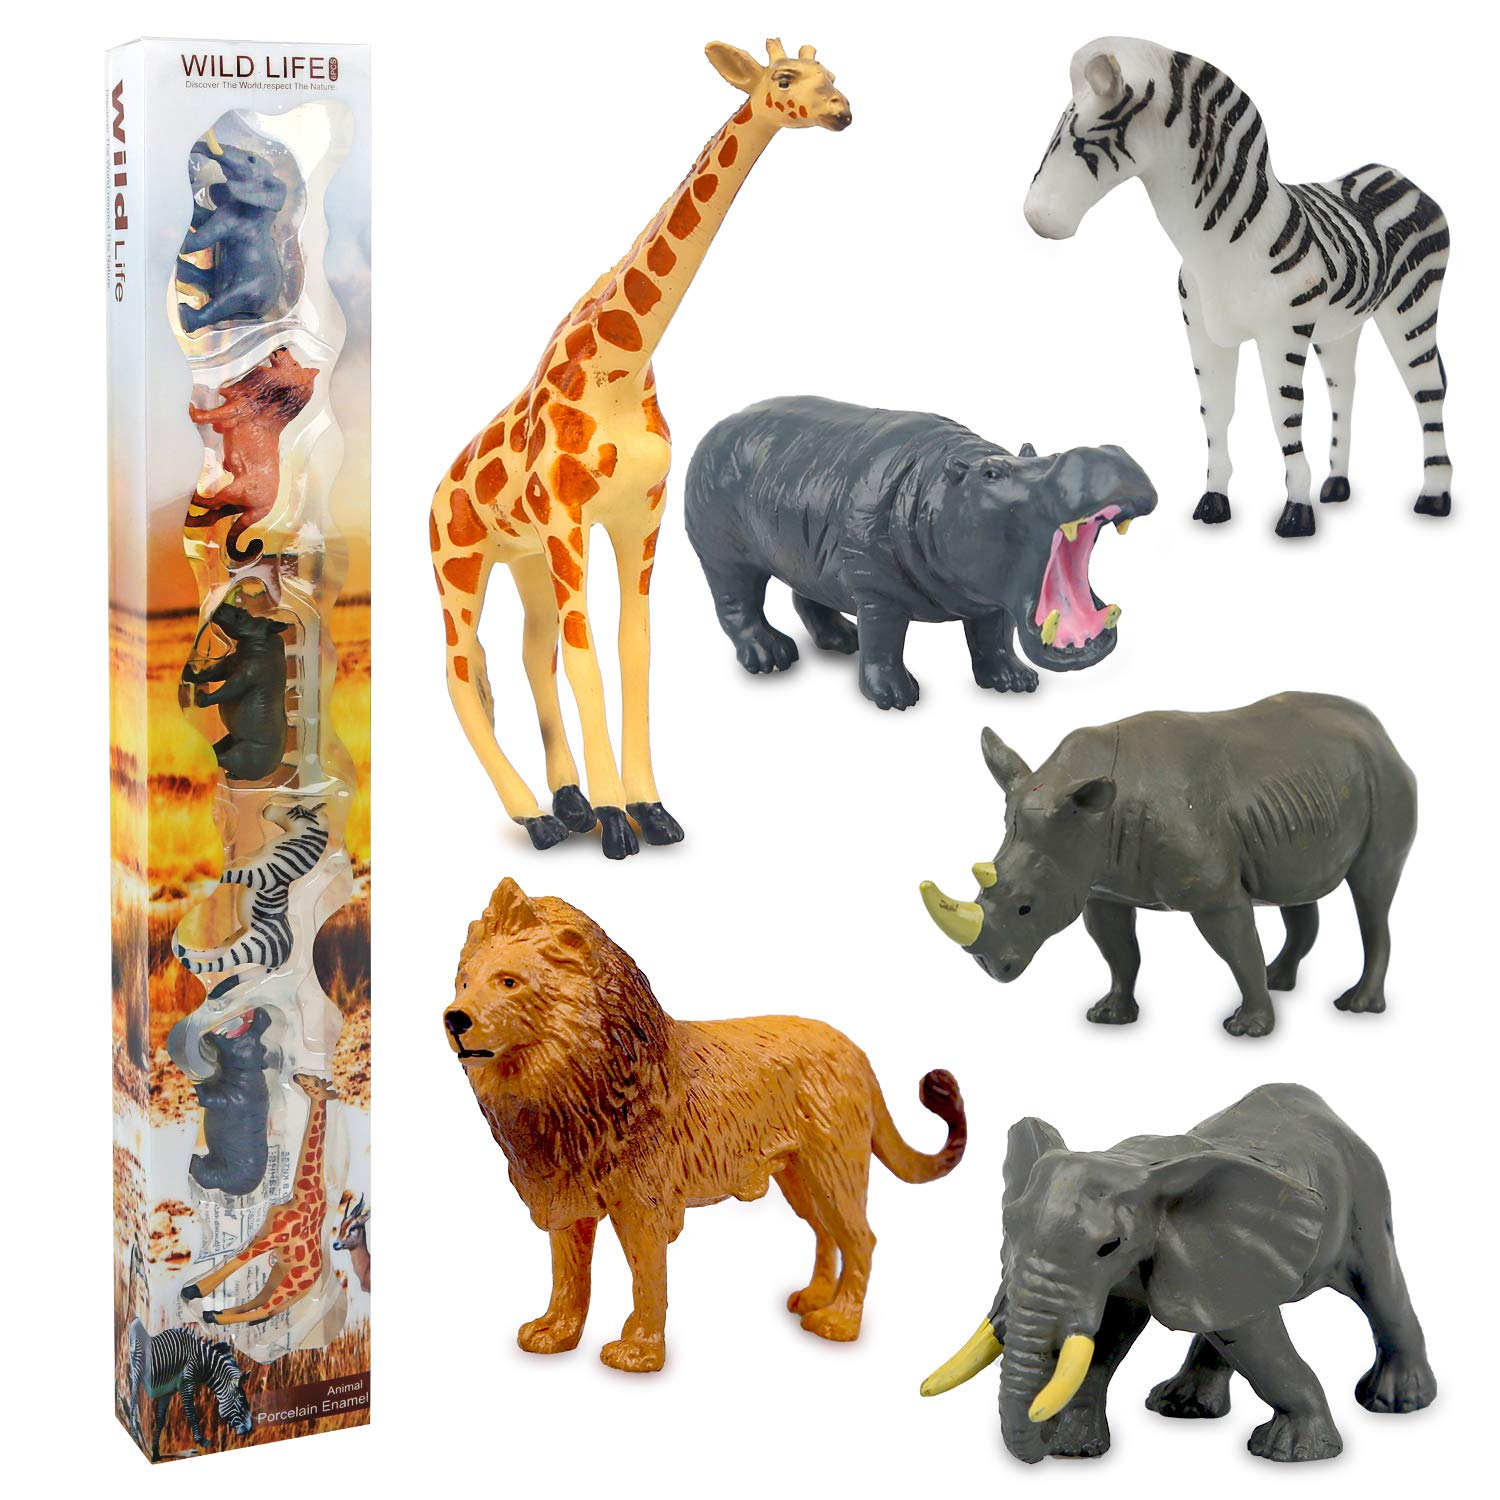 Sanlebi Animal Figures, 6 pieces Realistic Jungle Wild Animal Toys, Plastic Animals Set Cake Toppers Toy for Toddlers Children